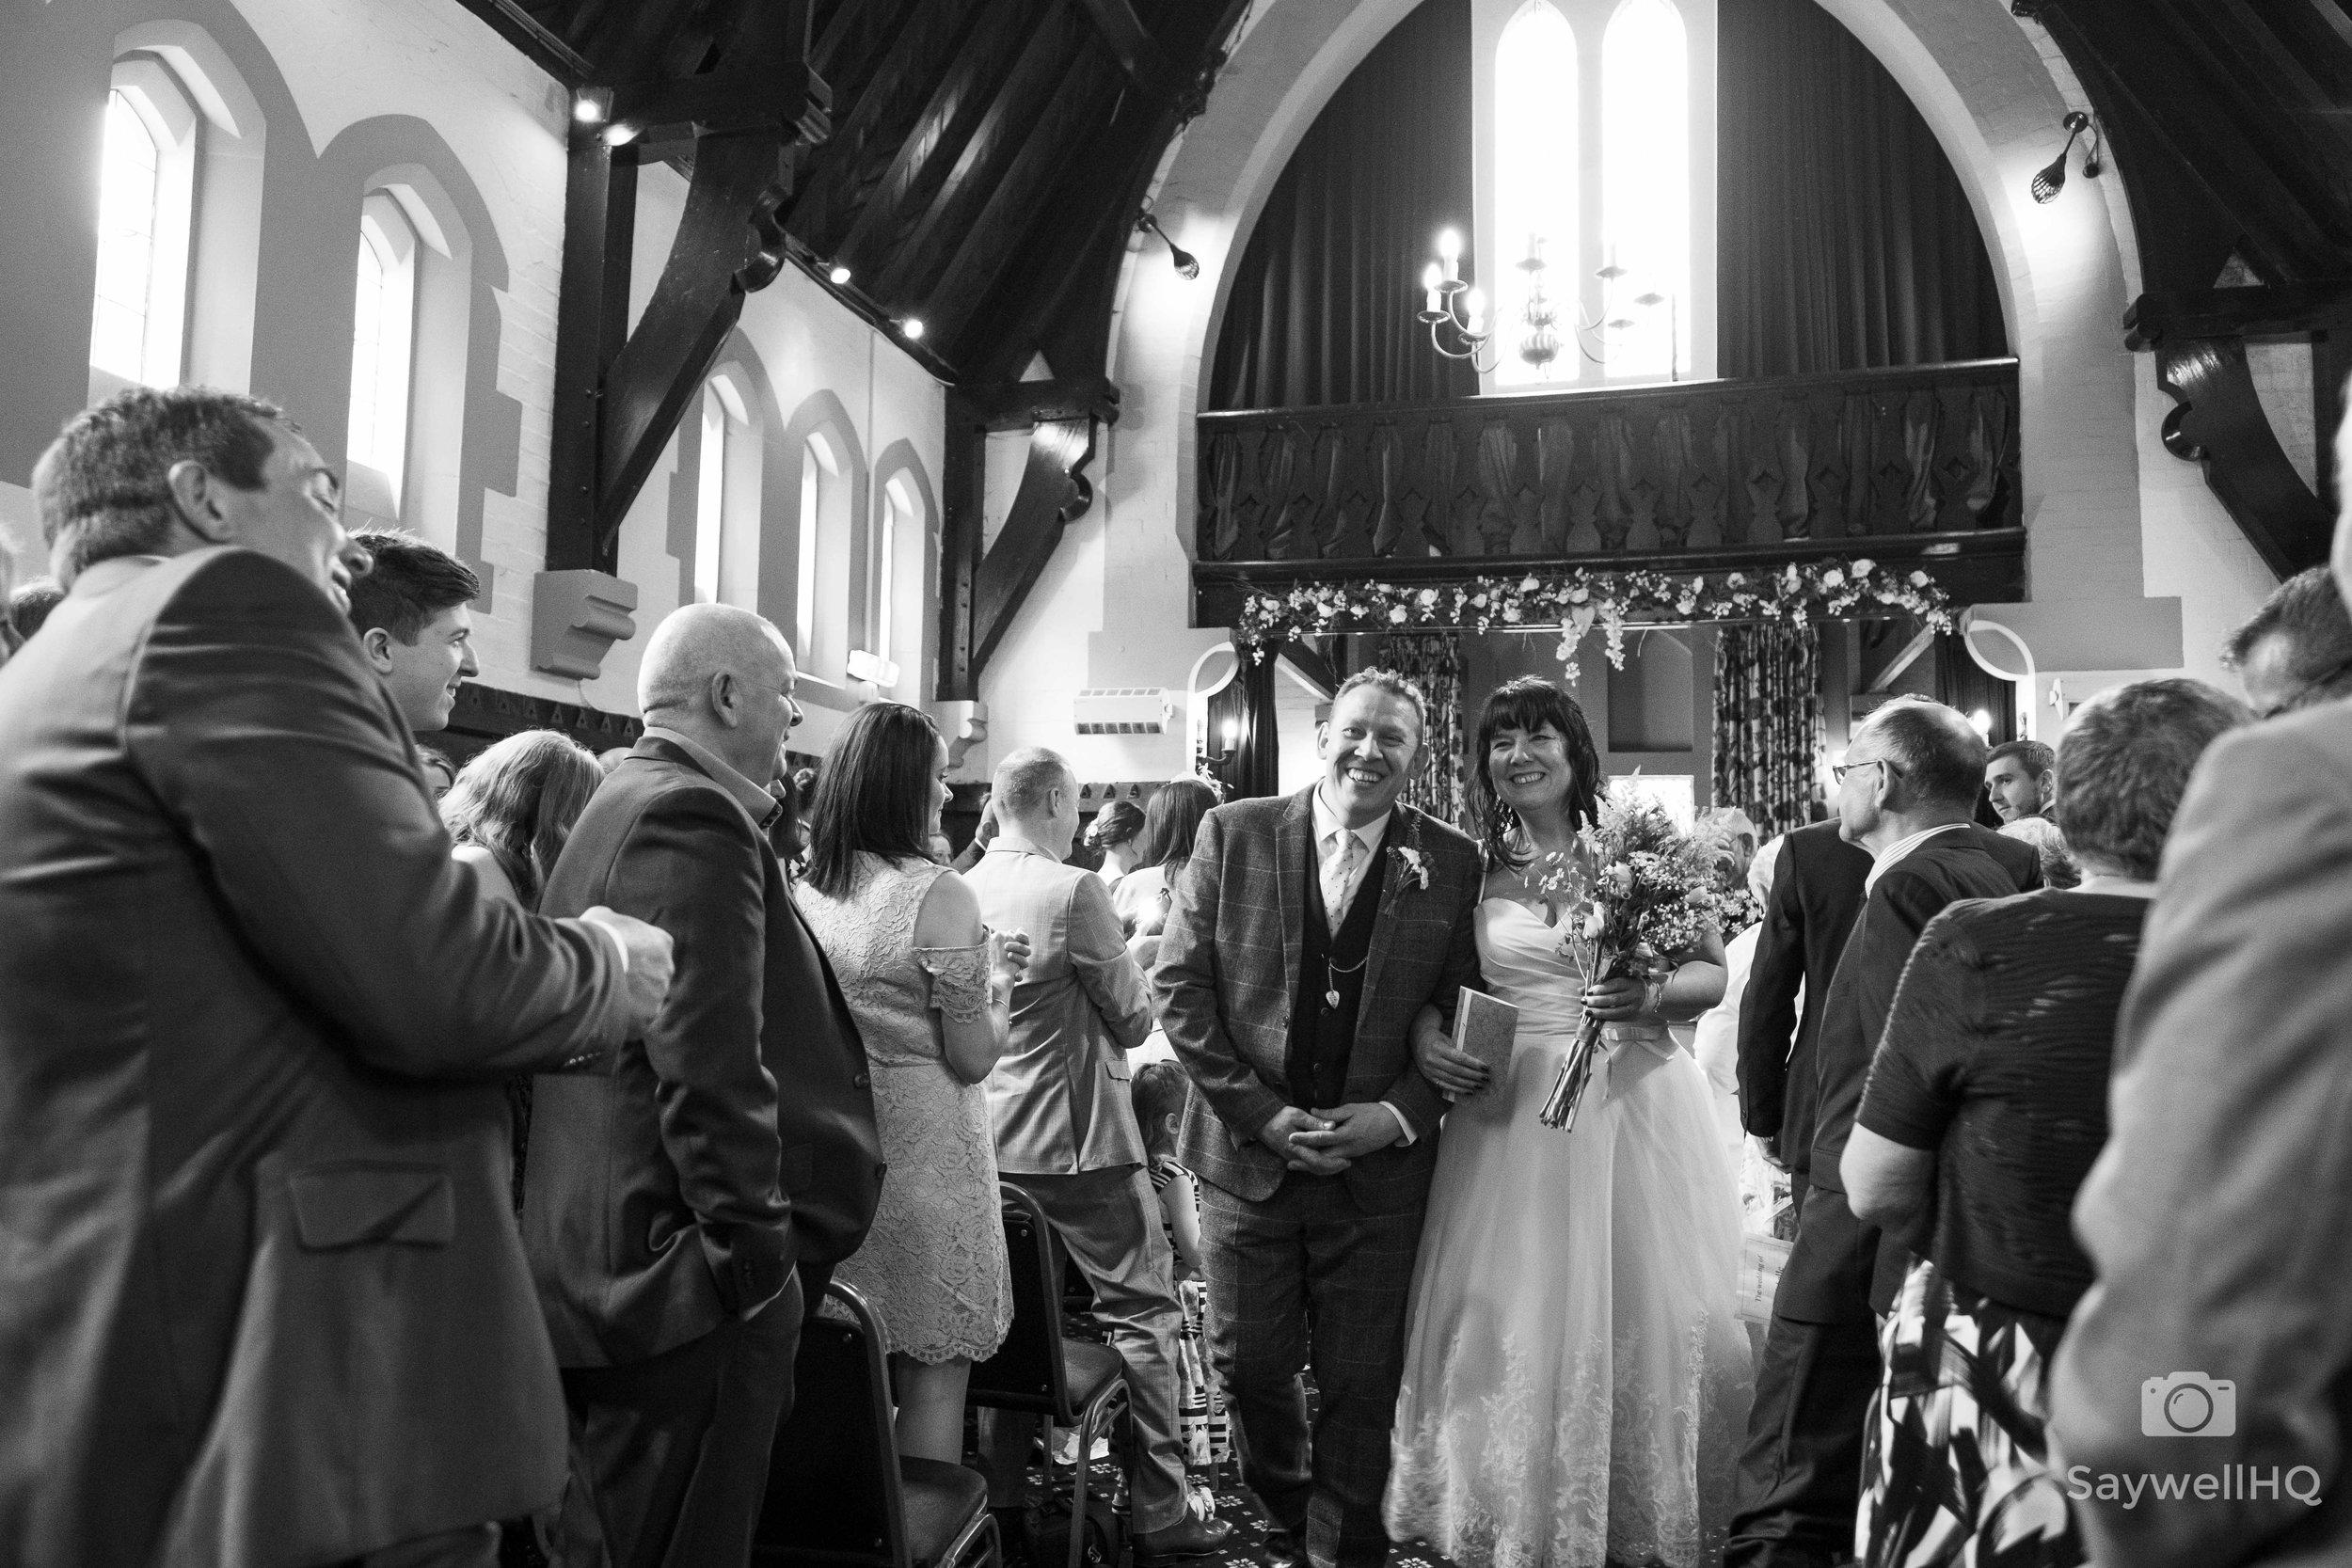 Wedding Photography at the Bestwood Lodge Hotel + bride + groom walking down the aisle